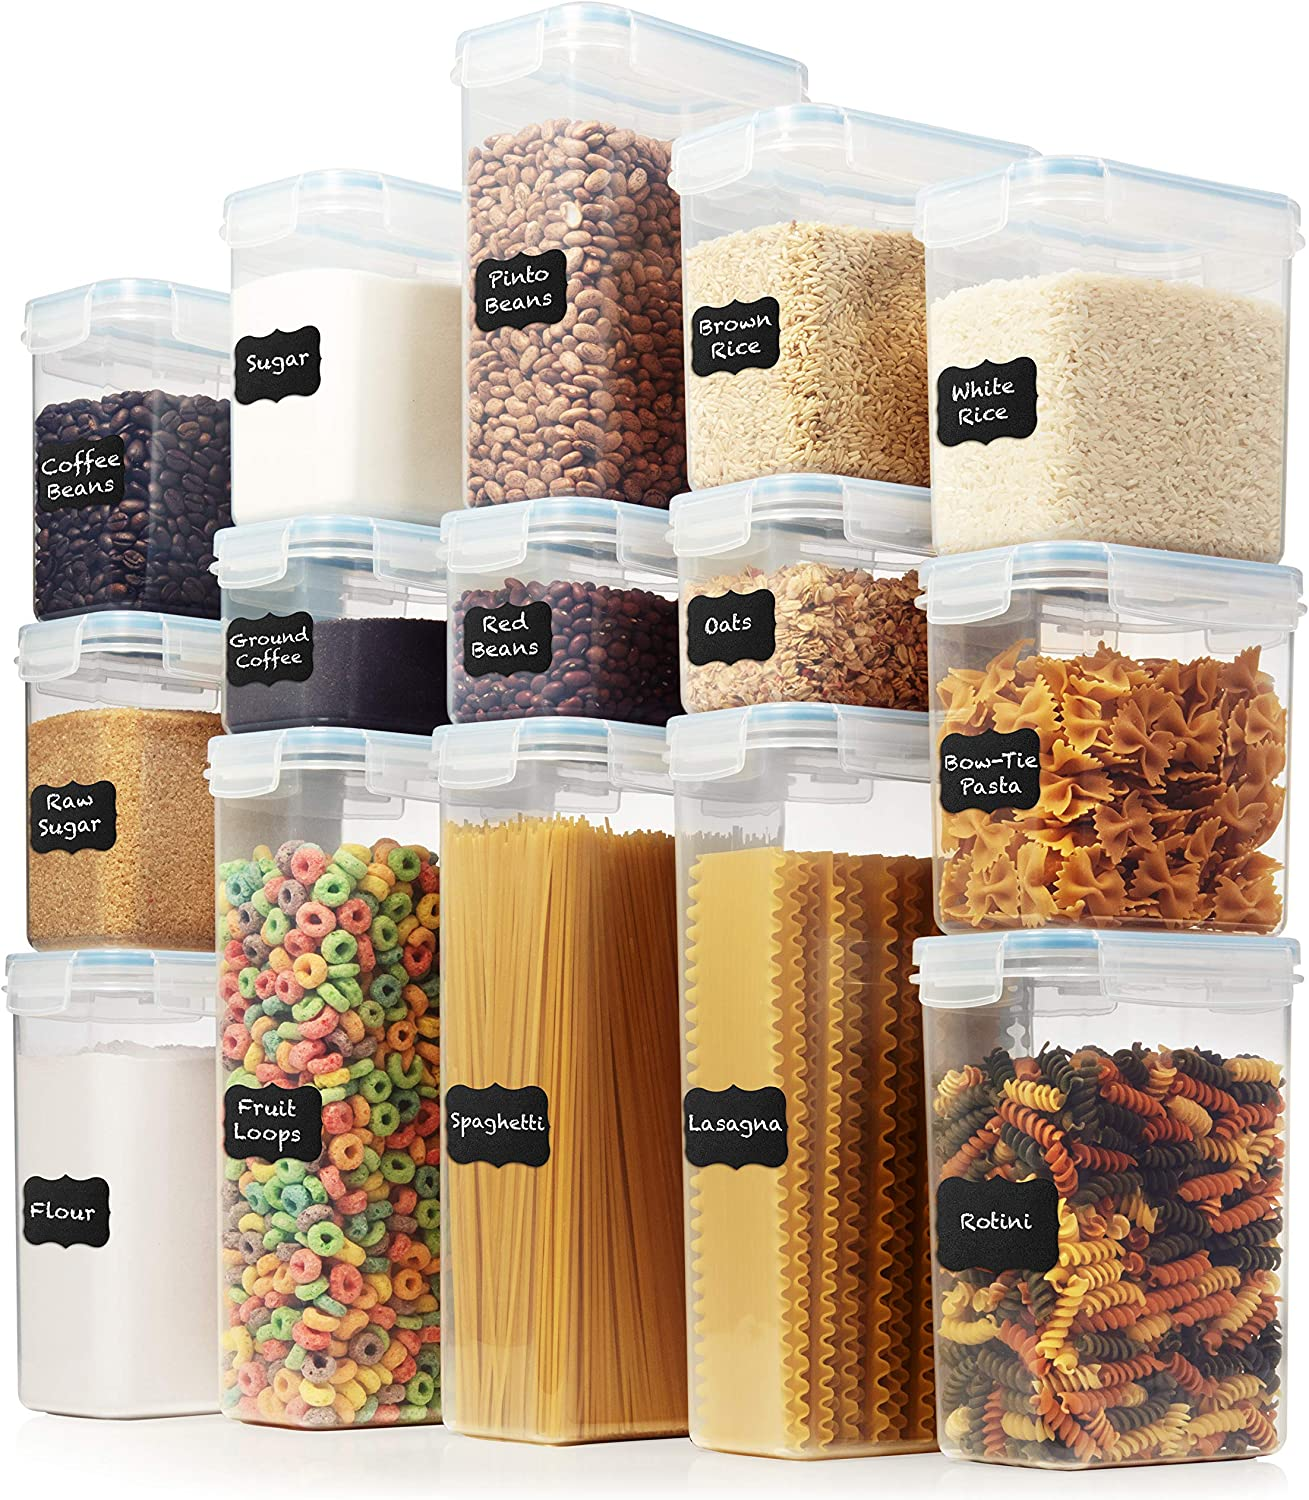 LARGE Set of 30pc Airtight Food Storage Containers (15 Container Set) - Amsha Kitchen & Pantry Organization - BPA-Free Plastic Containers - Interchangeable Lids Ideal for Spaghetti, Flour, Rice, Sugar